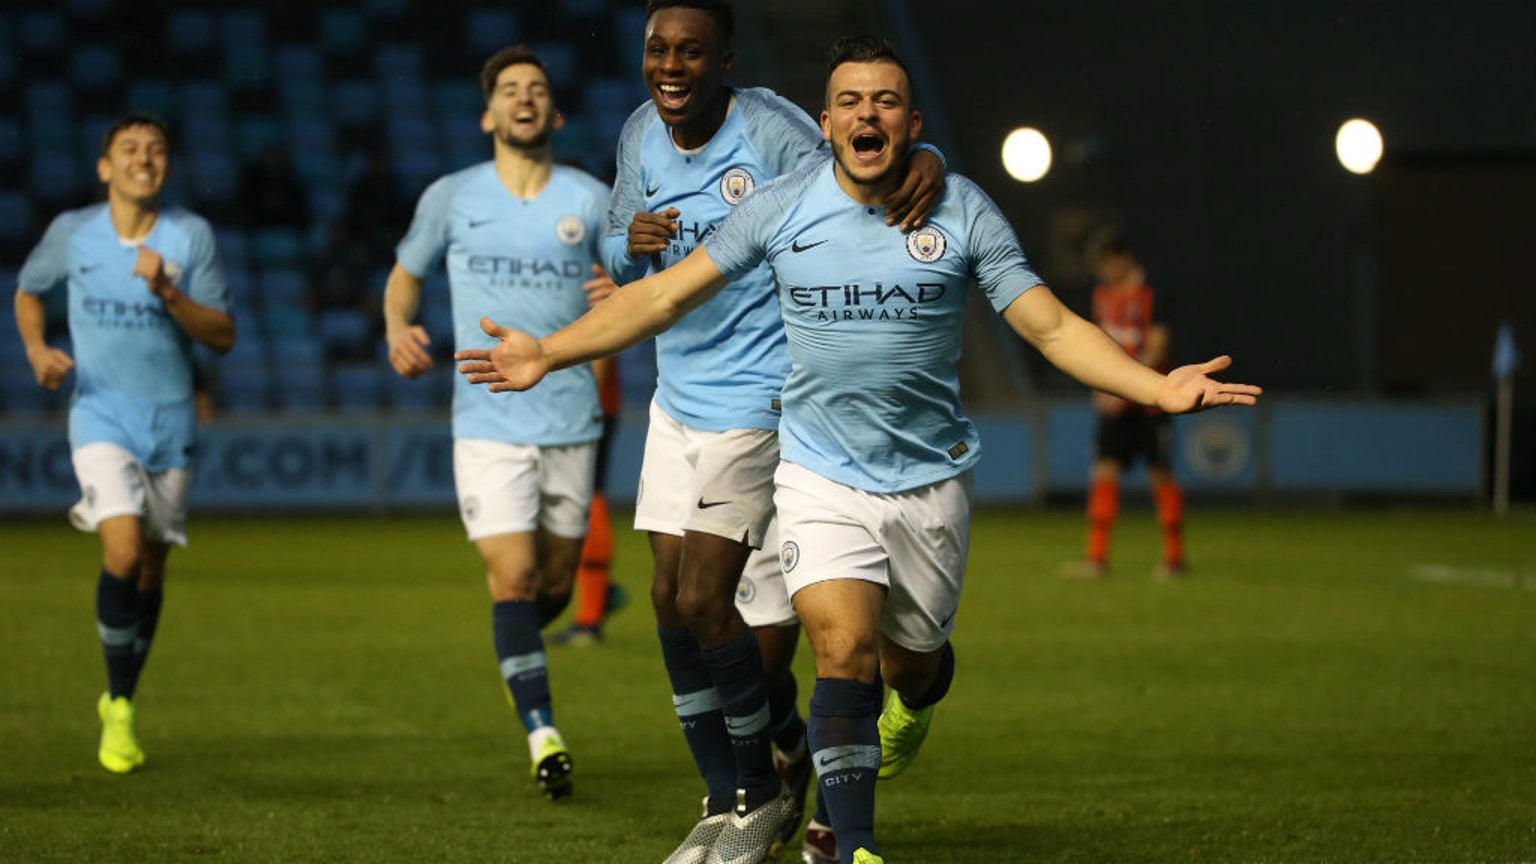 ON TARGET: Lorenzo Gonzalez was among the goals for City